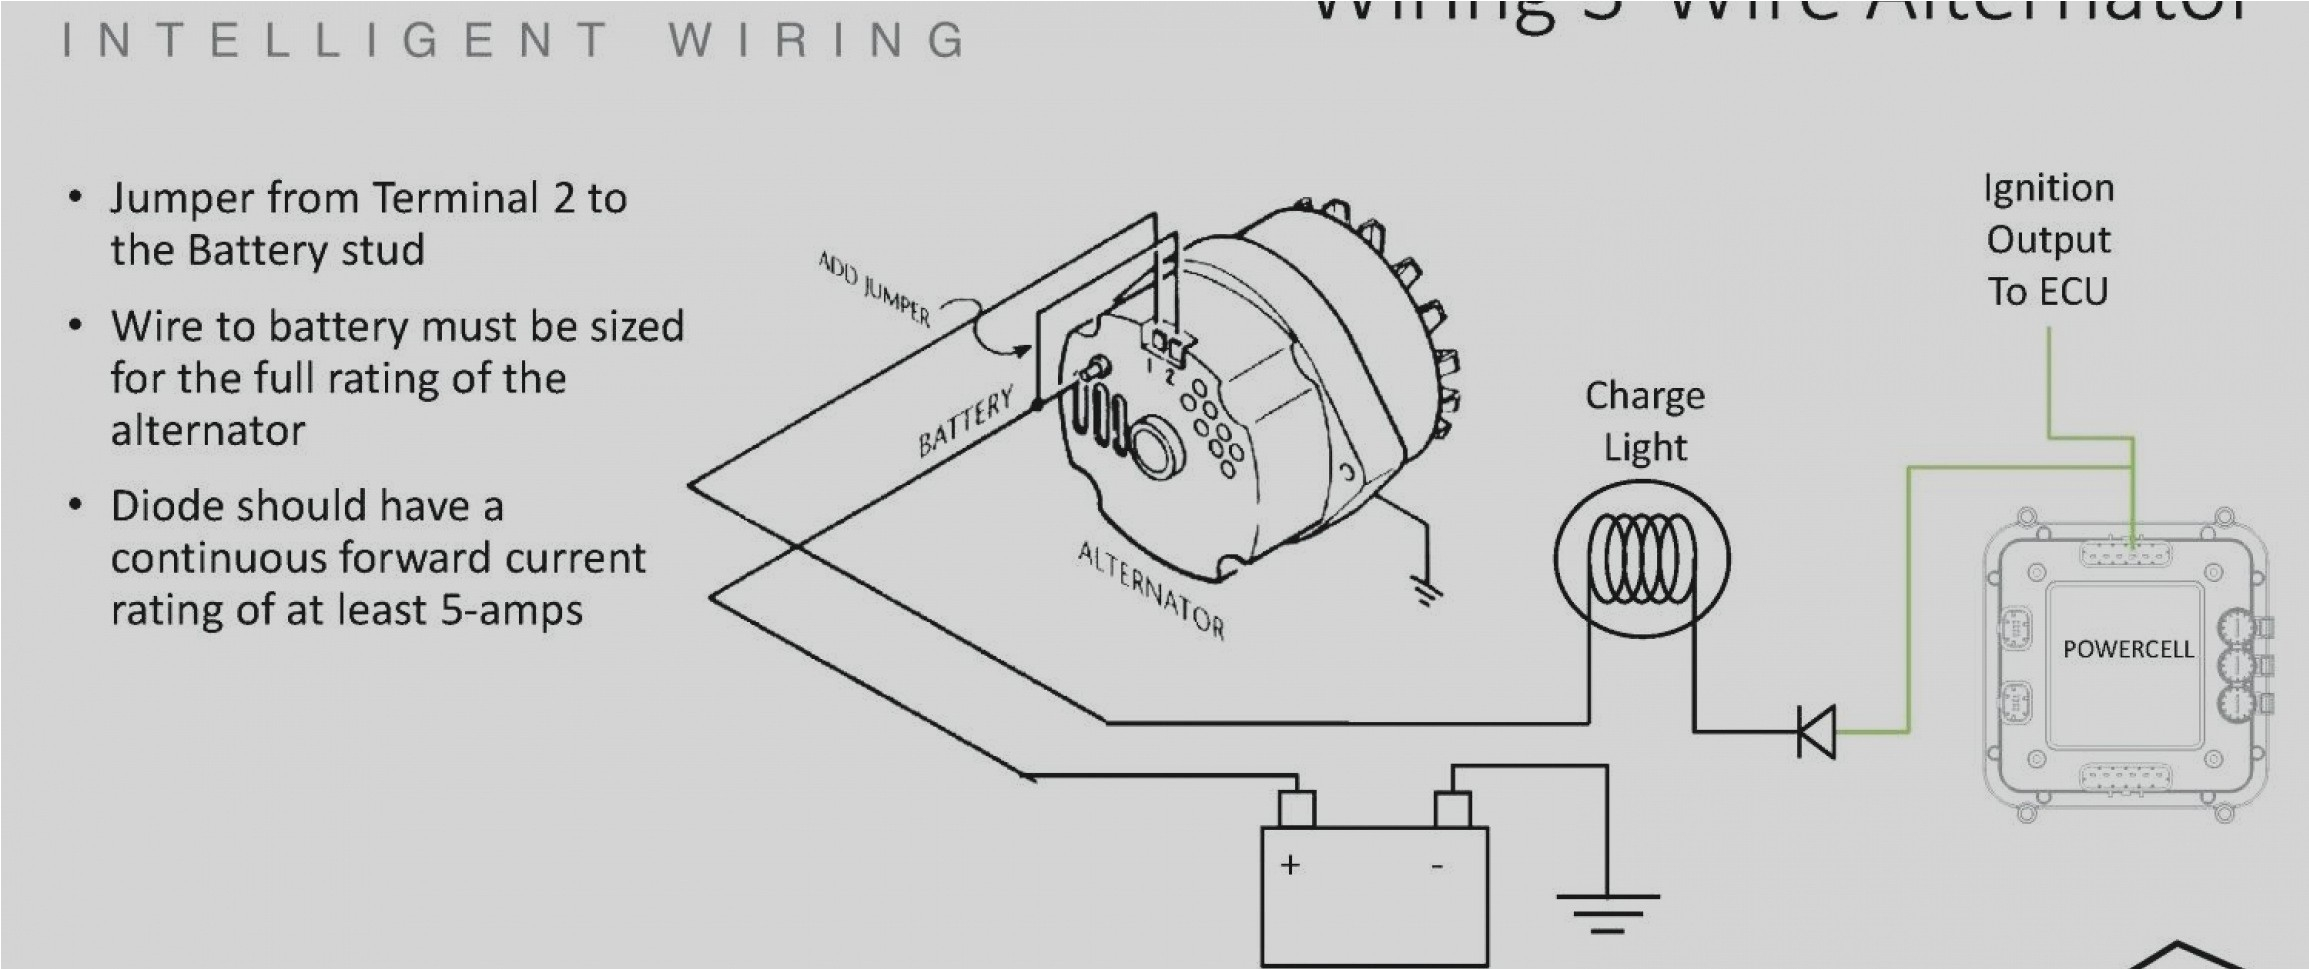 mack 3 wire alternator diagram wiring diagram expert mack alternator wiring